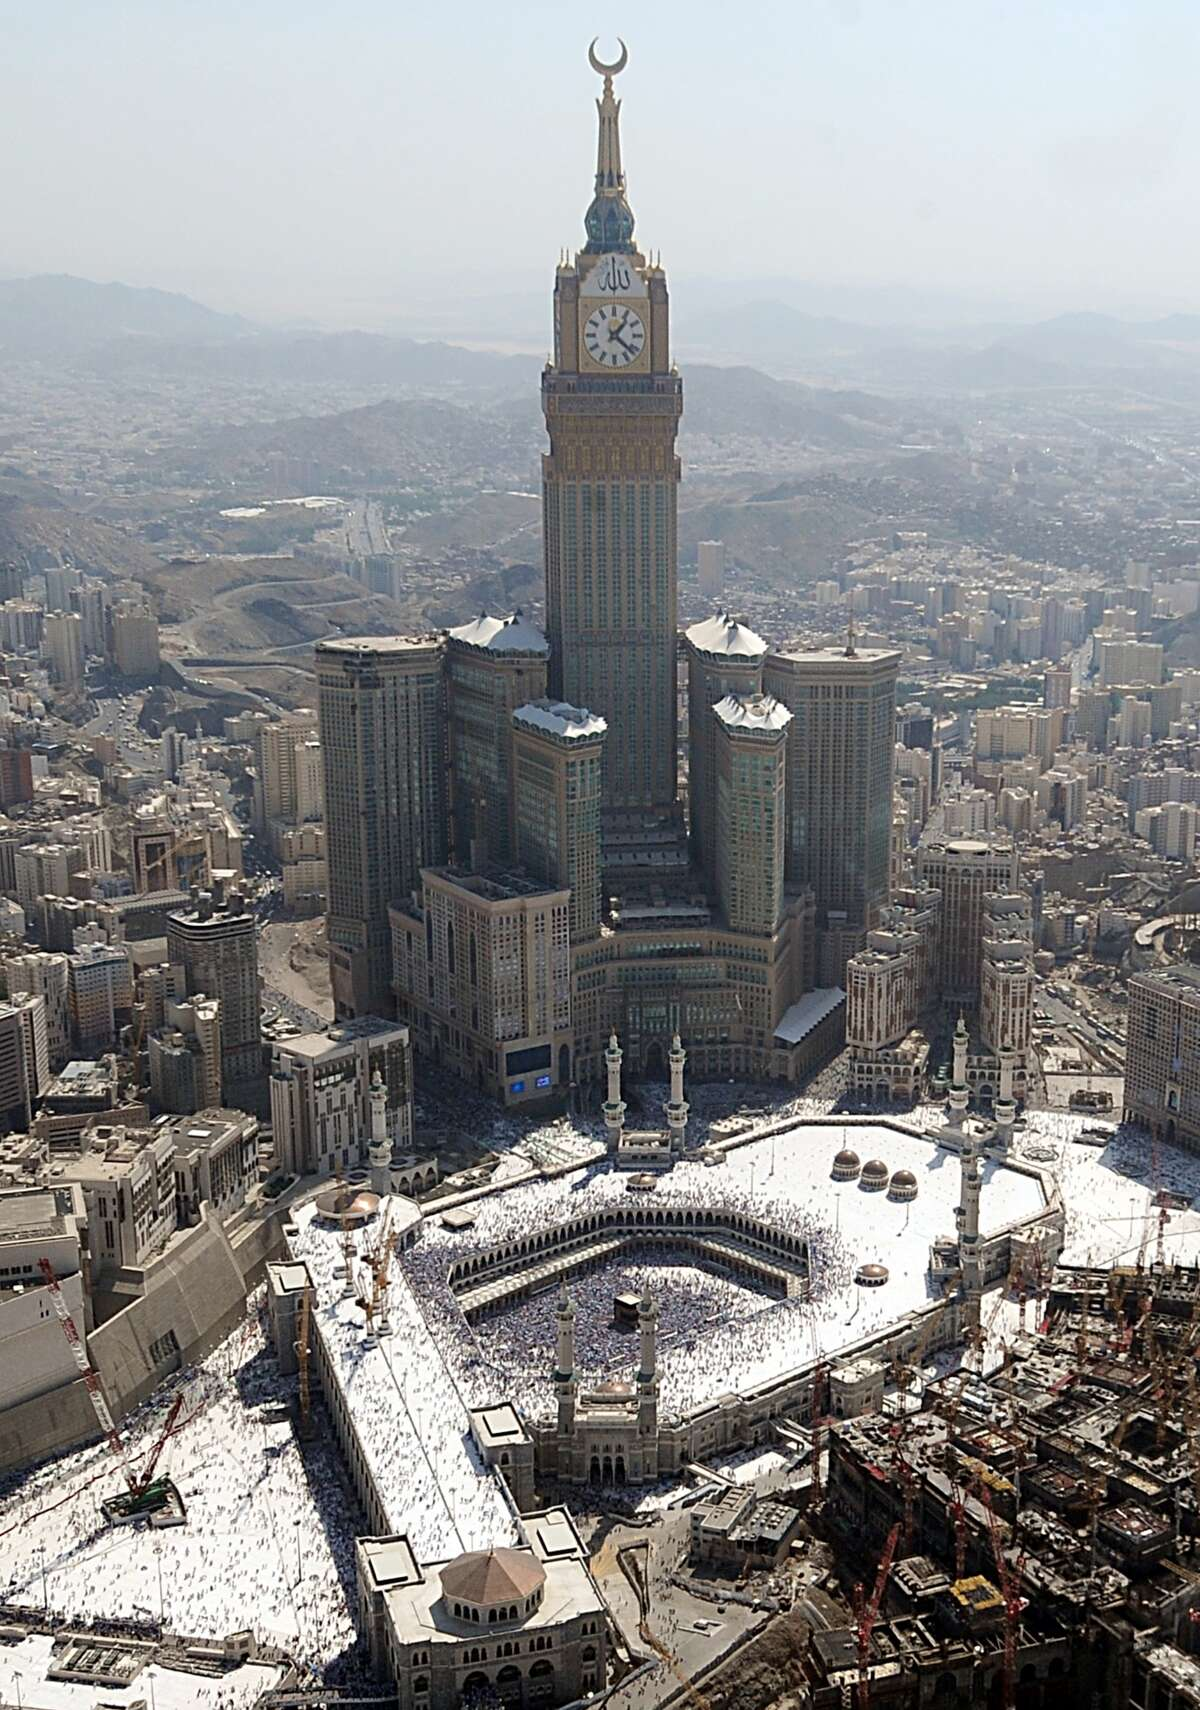 The Abraj al-Bait Towers, also known as the Mecca Royal Hotel Clock Tower in Mecca, Saudi Arabia is the most expensive building in the world, costing $15 billion to construct. It overlooks the holy Grand Mosque of Mecca.